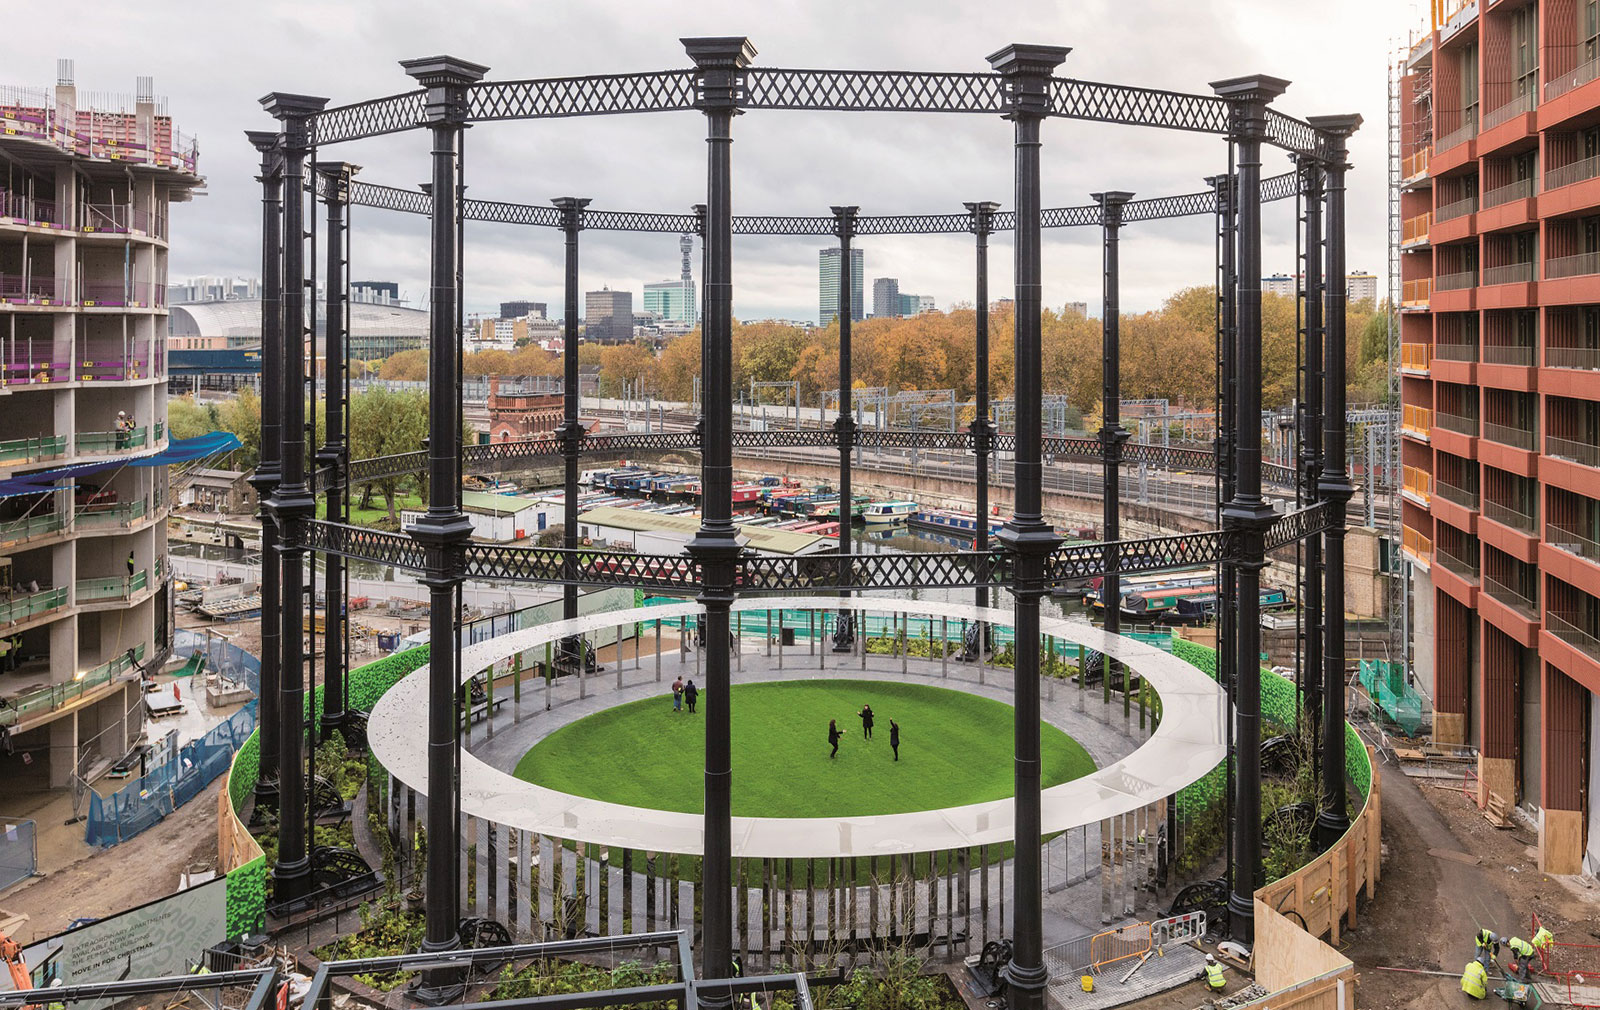 Gasholder-park-kings-cross